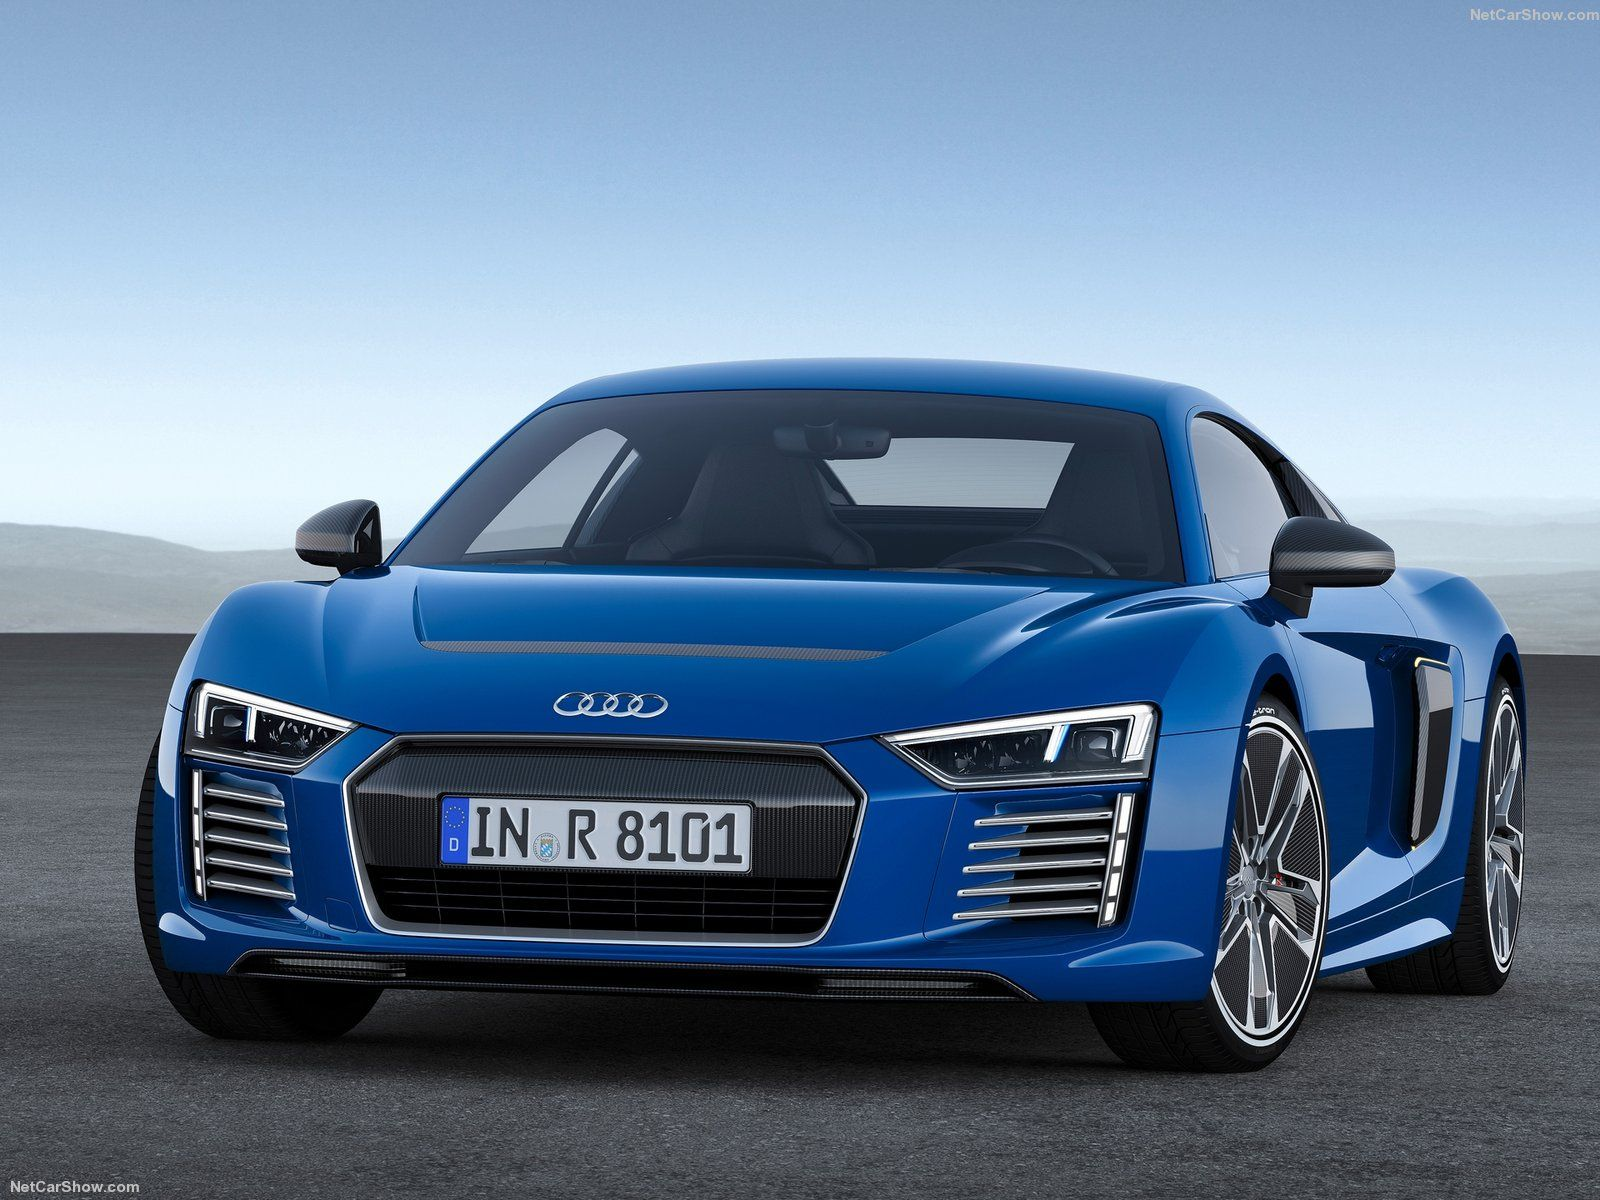 Audi hd car wallpapers and backgrounds download free audi hd widescreen car wallpapers and